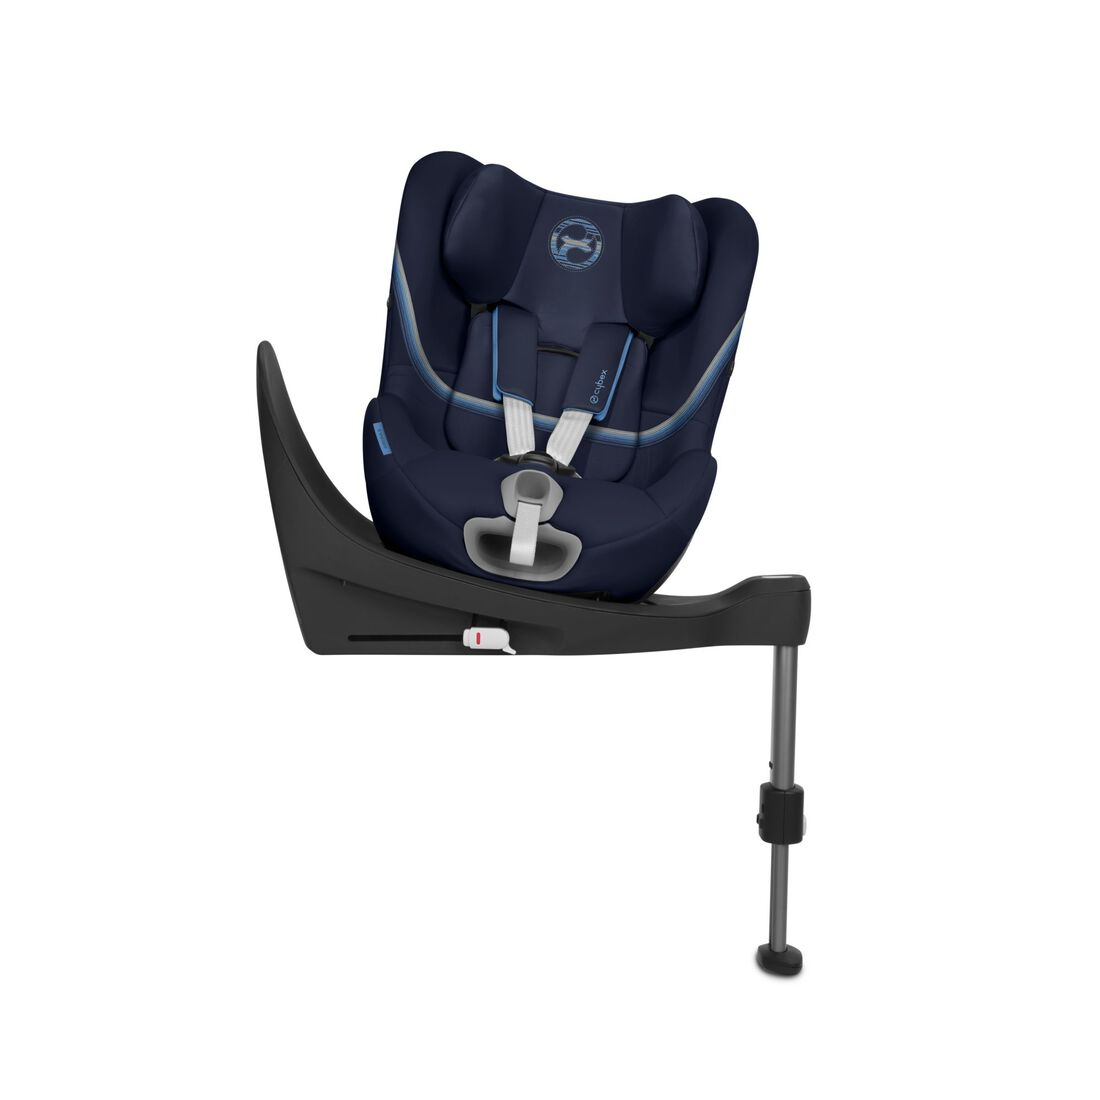 CYBEX Sirona S i-Size - Navy Blue in Navy Blue large image number 3